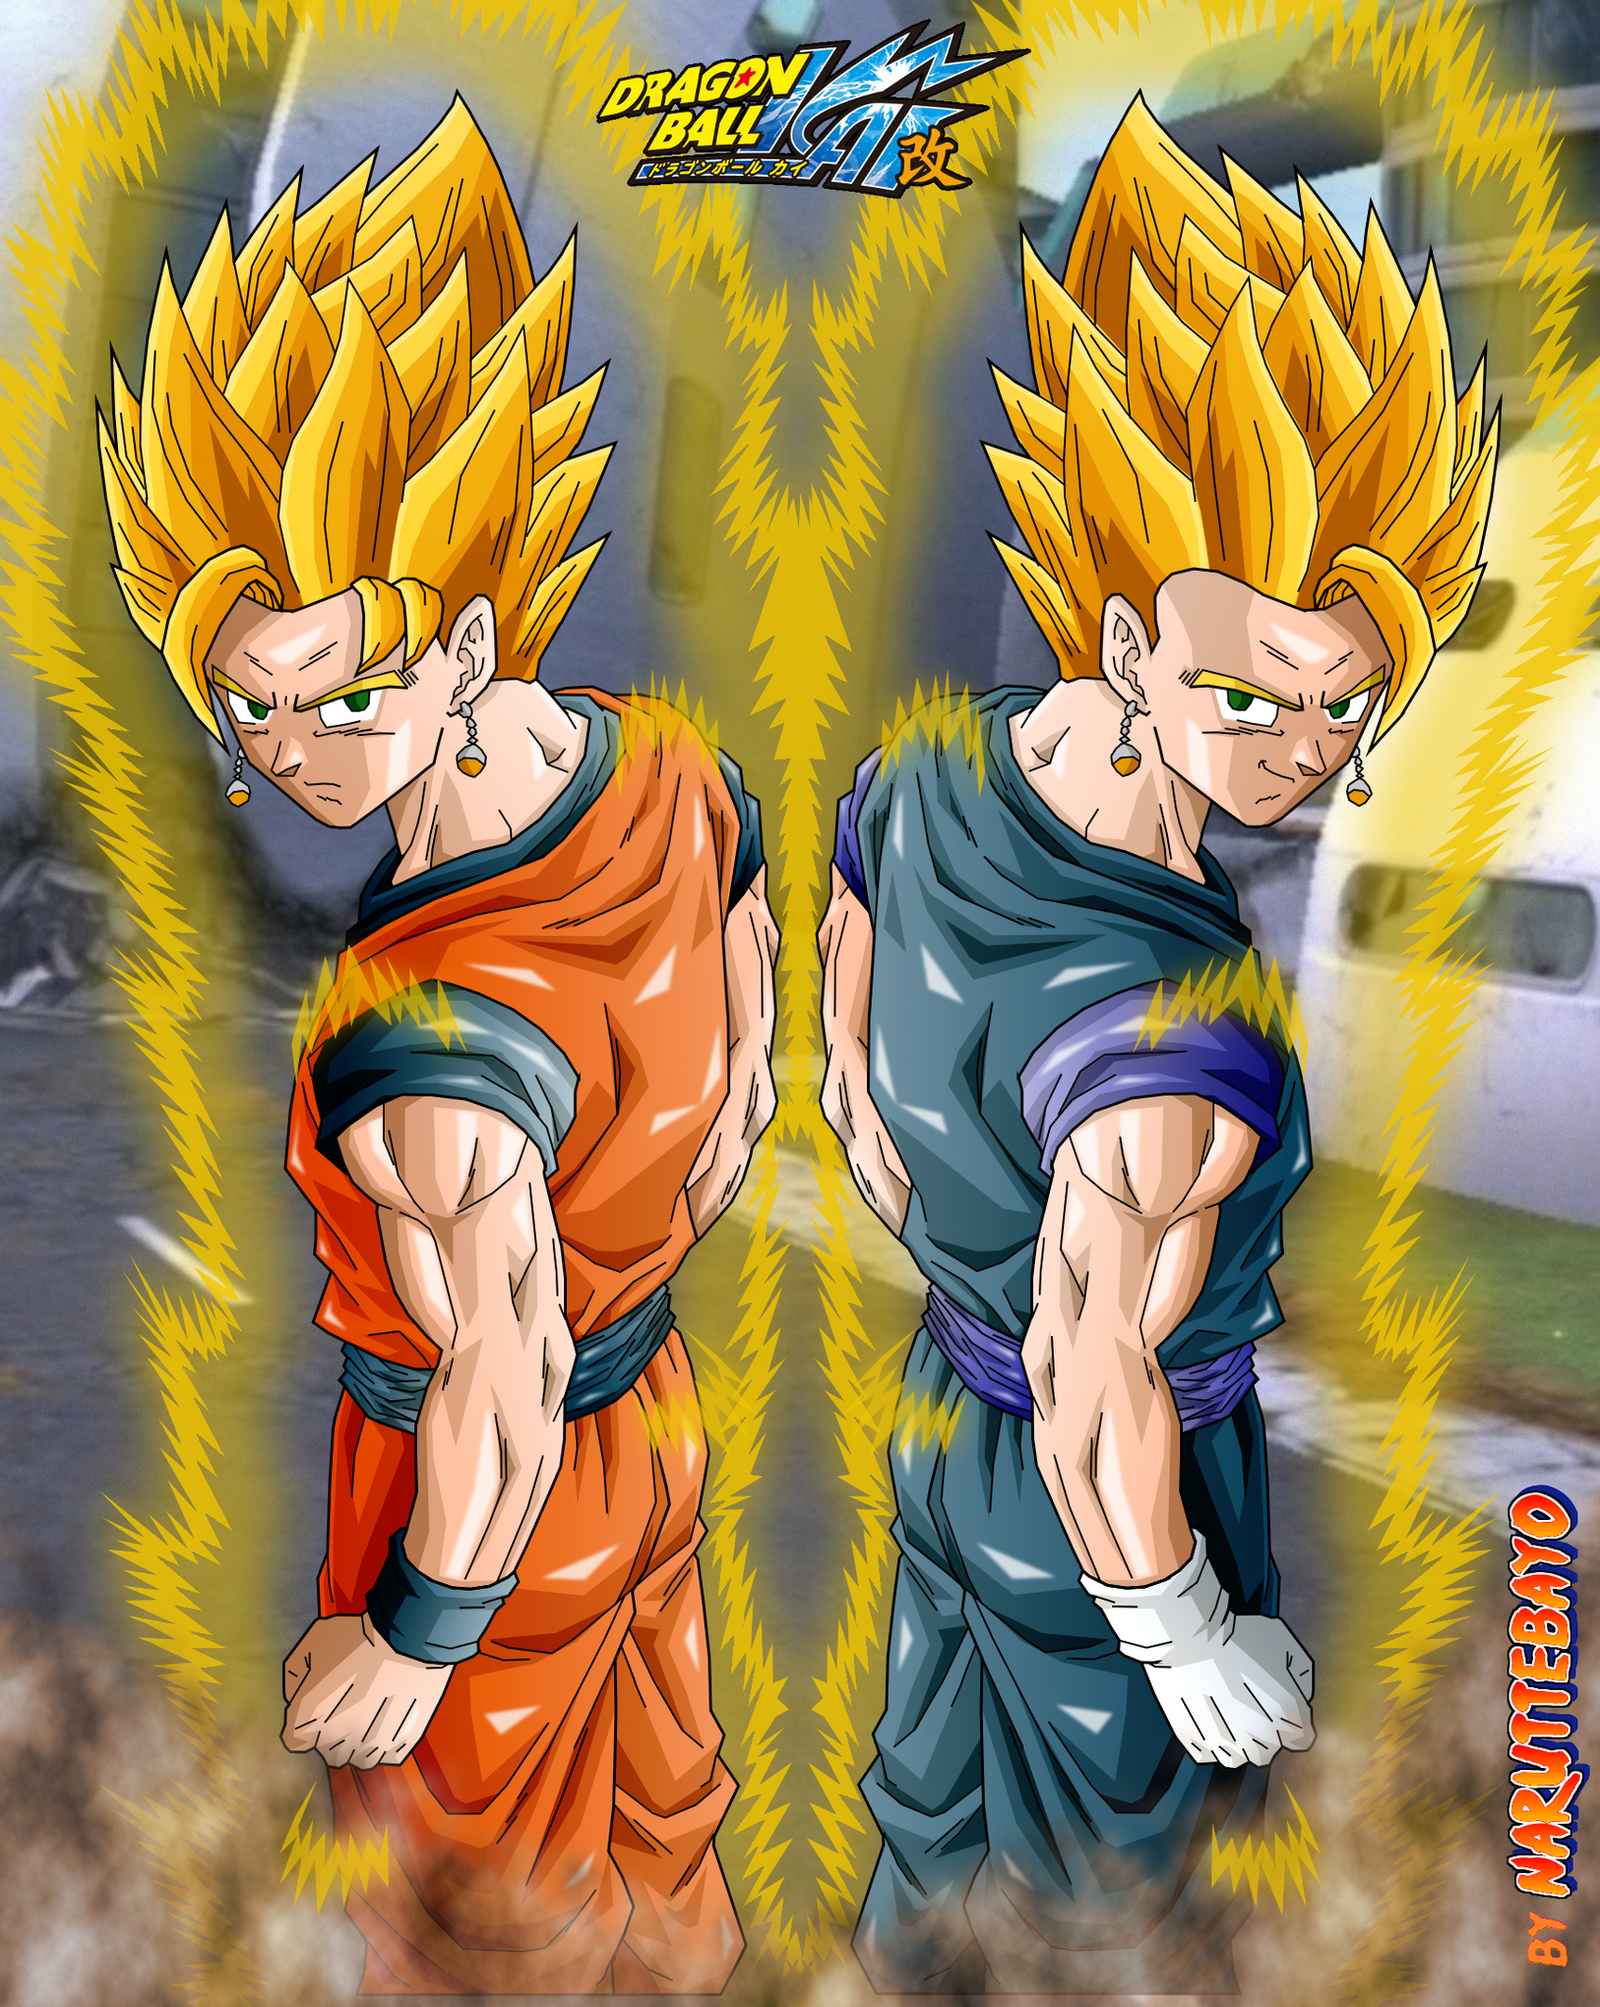 gokhan vegehan double fusion - back pose ssj by Naruttebayo67Goku And Gohan Fusion Ssj4